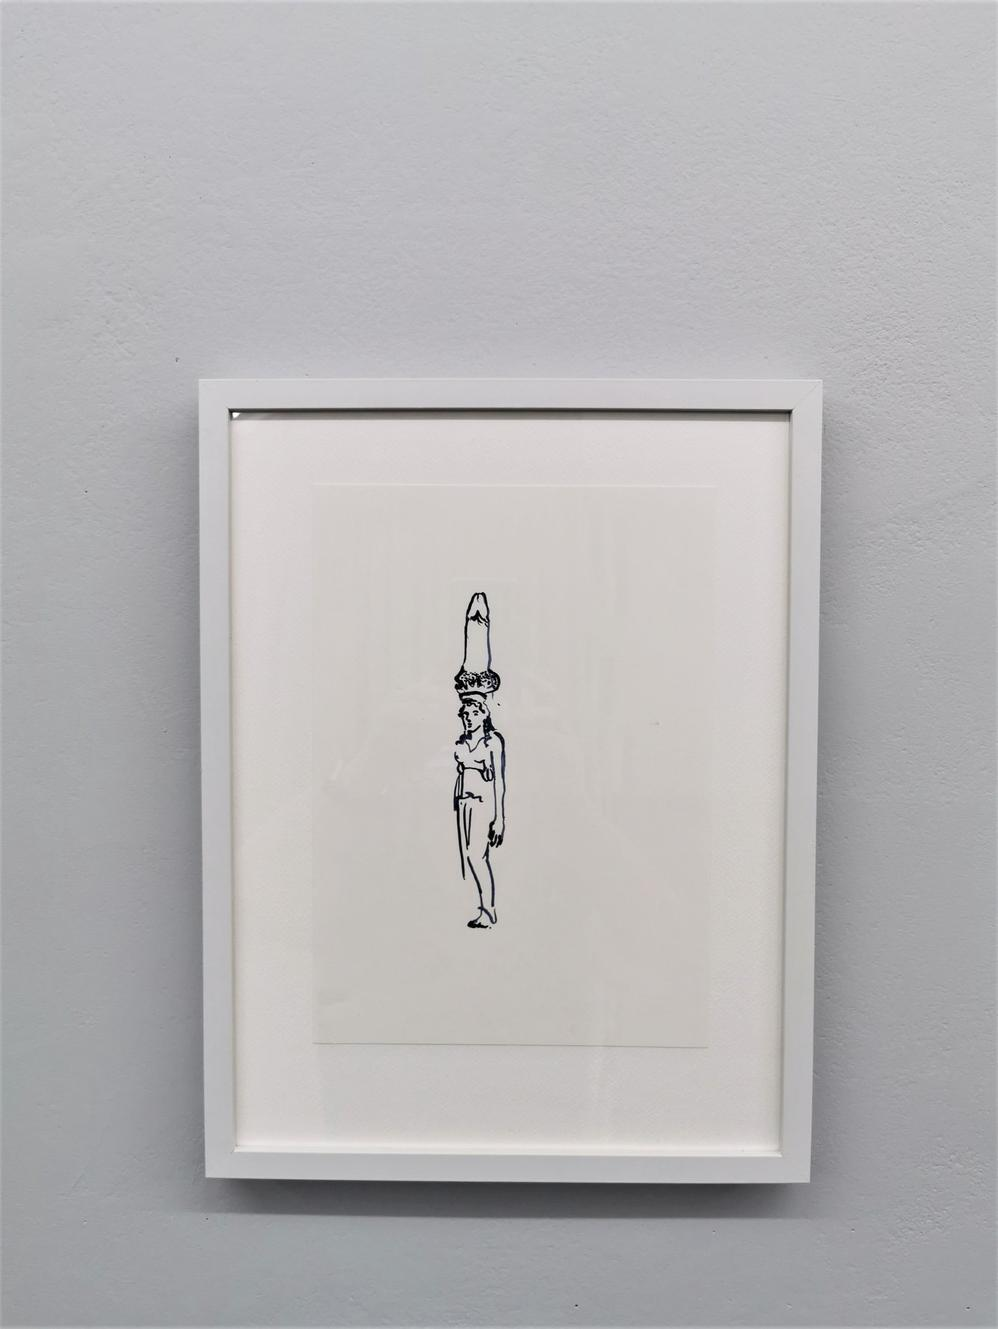 Exhibition view, drawing 01